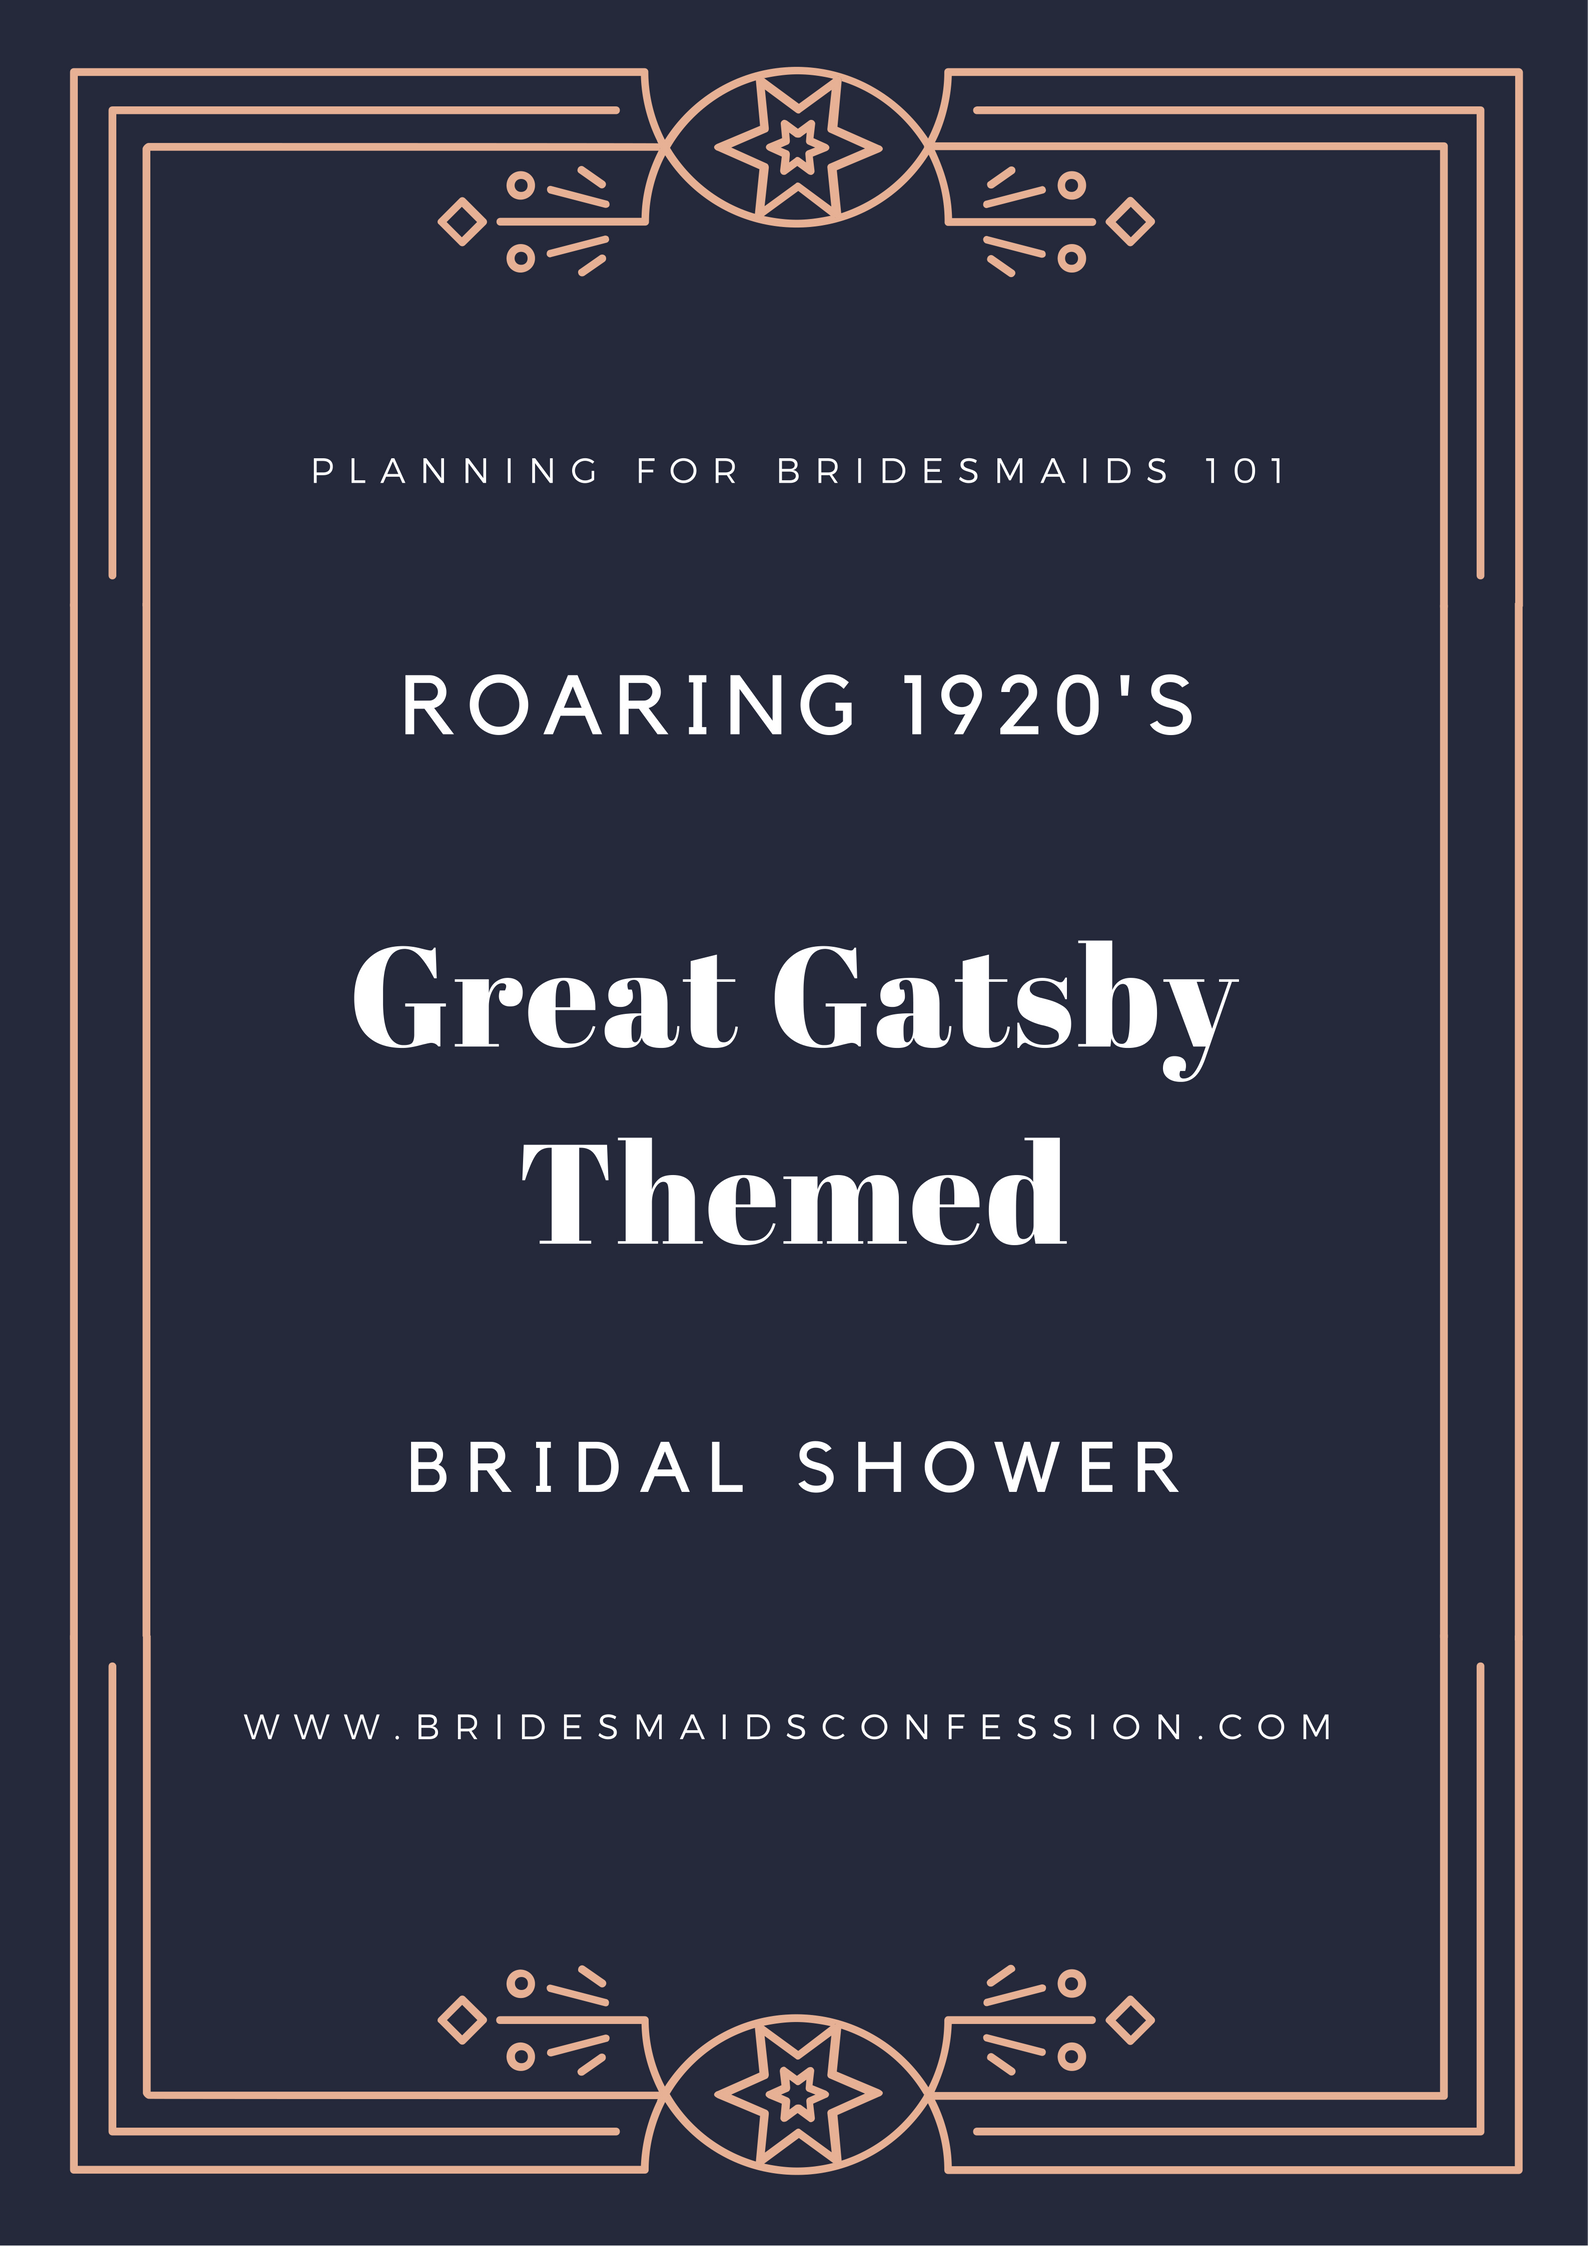 Roaring 1920s Great Gatsby Themed Bridal Shower from bridesmaidsconfession.com